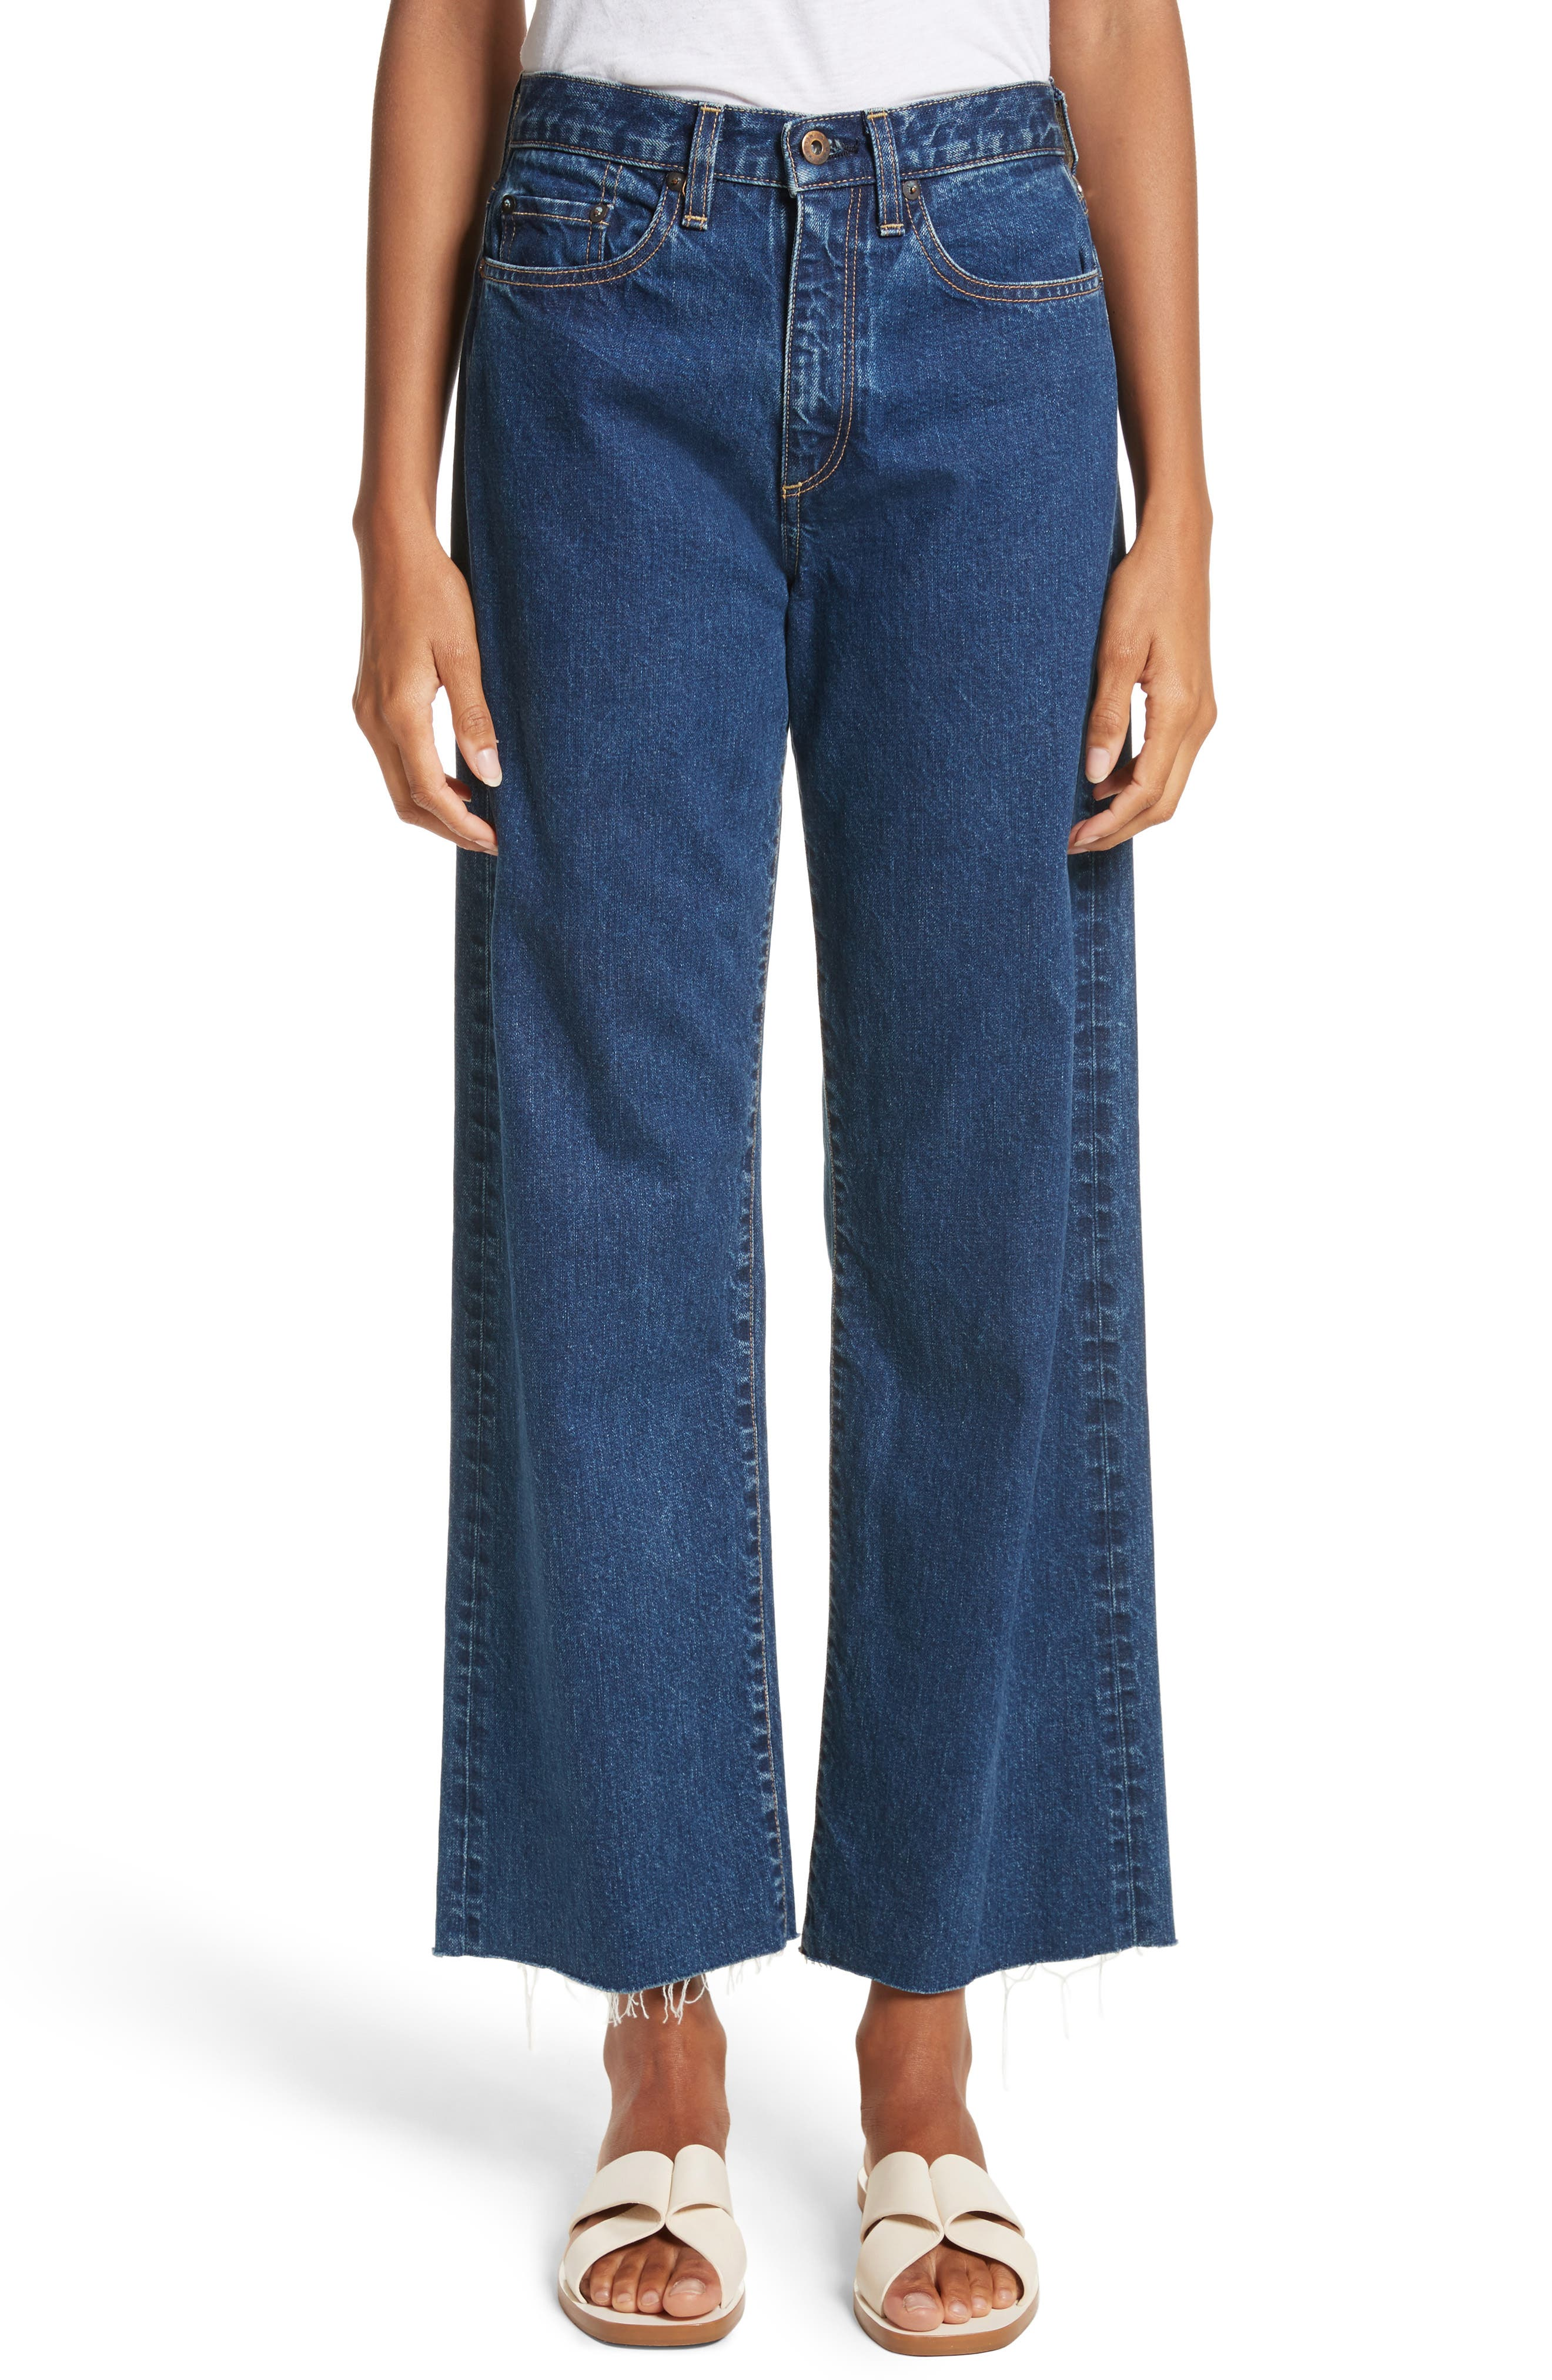 Toluca High Waist Wide Leg Jeans,                         Main,                         color, Indigo